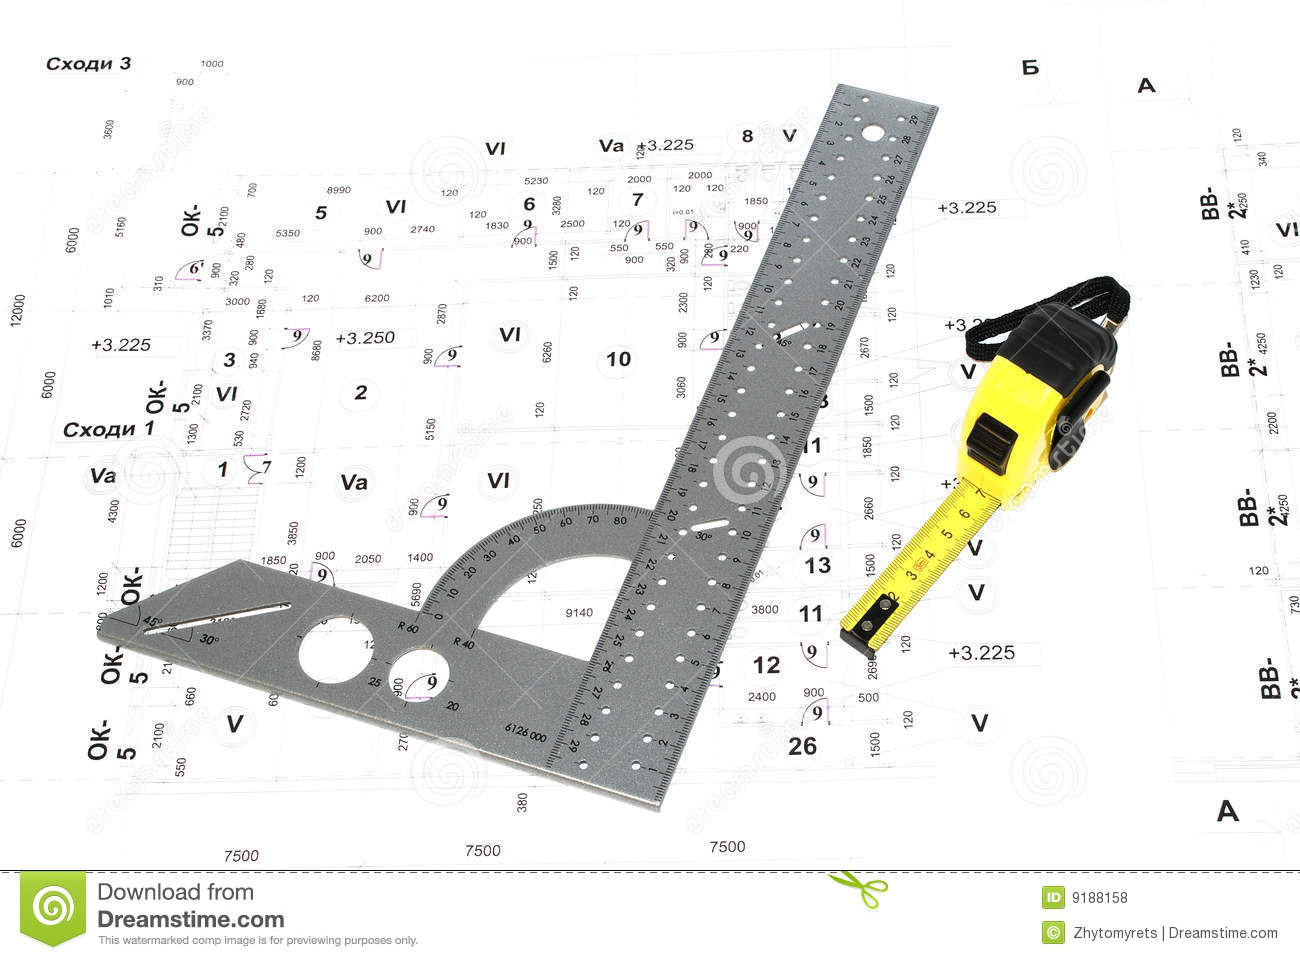 Download The Metal Ruler And Wiring Diagram. Stock Photo - Image of laptop,  equipment